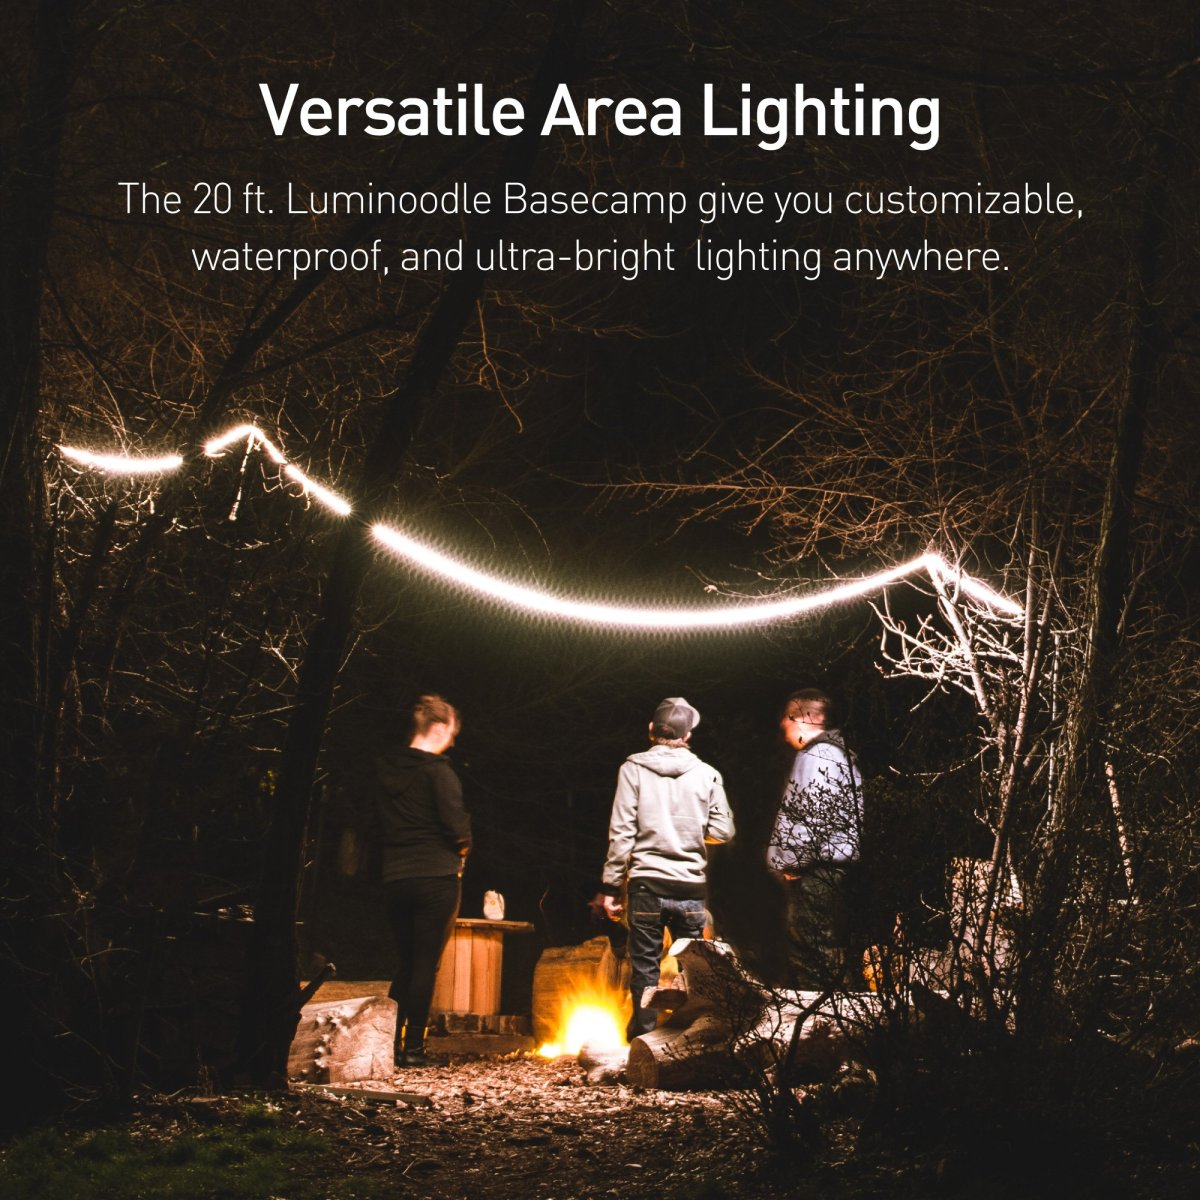 Best LED Rope for the Outdoors? Luminoodle Basecamp